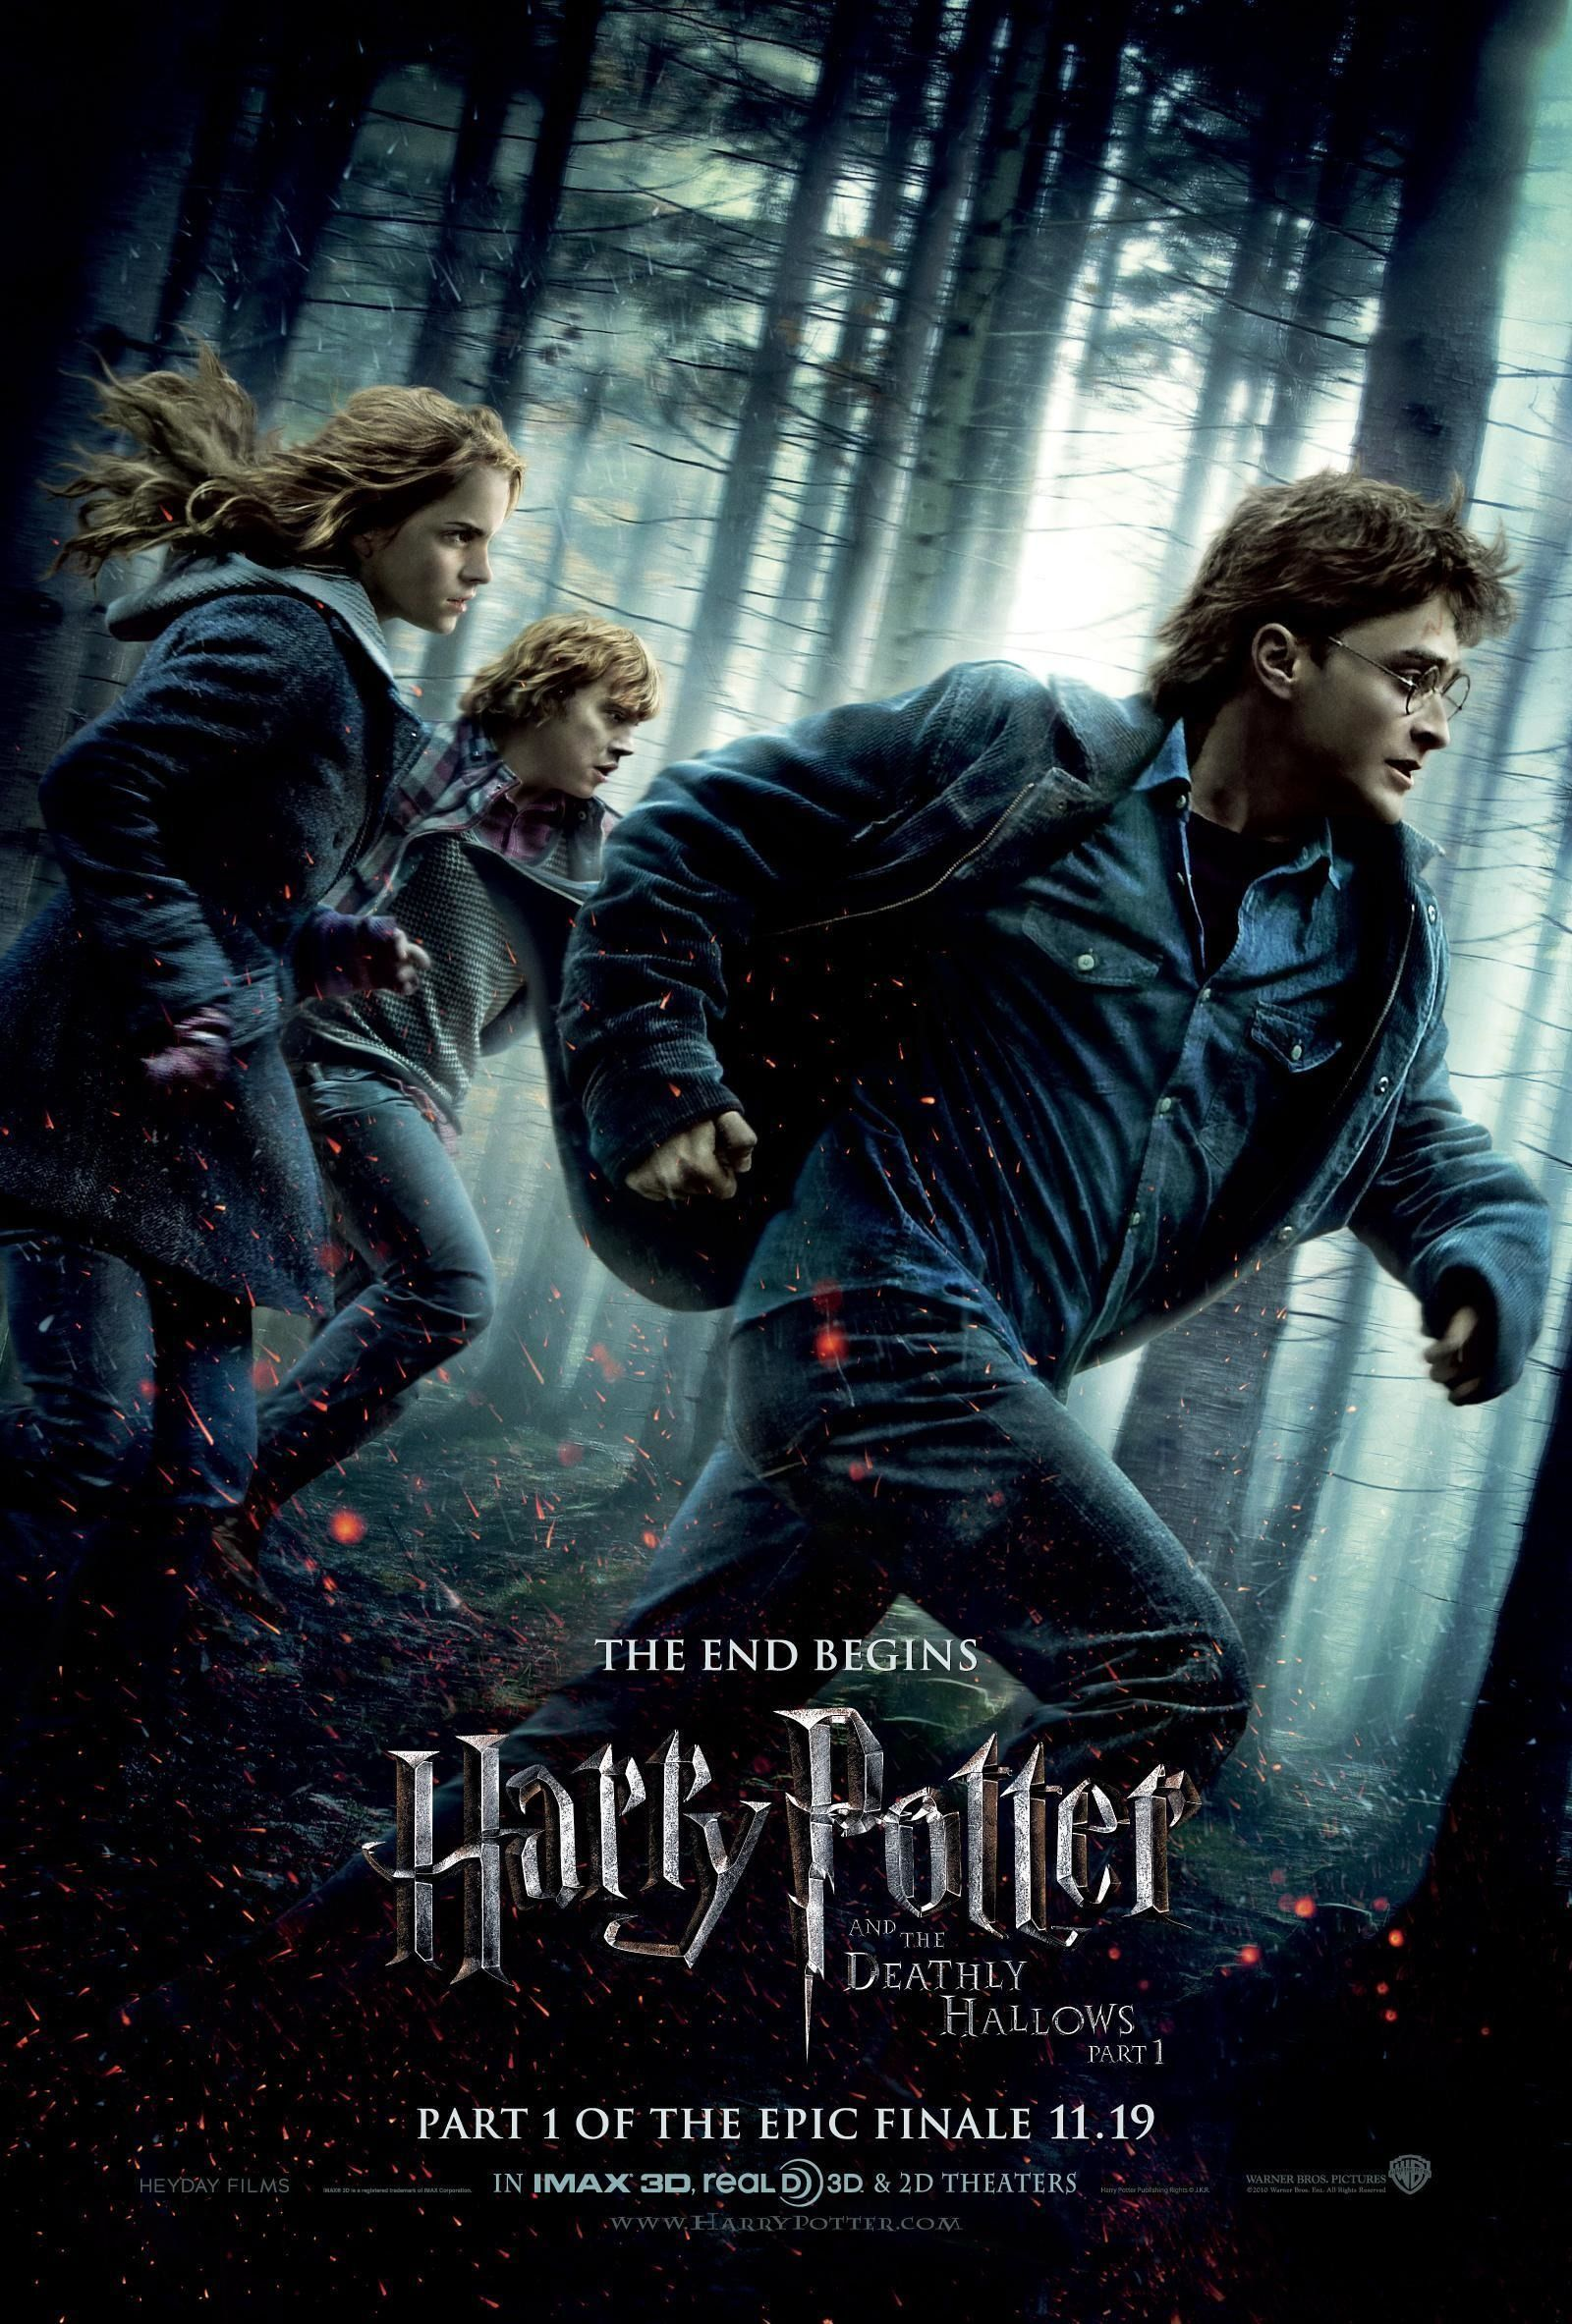 Harry Potter And The Deathly Hallows Part 1 Harry Potter Movie Posters Deathly Hallows Part 1 Deathly Hallows Movie